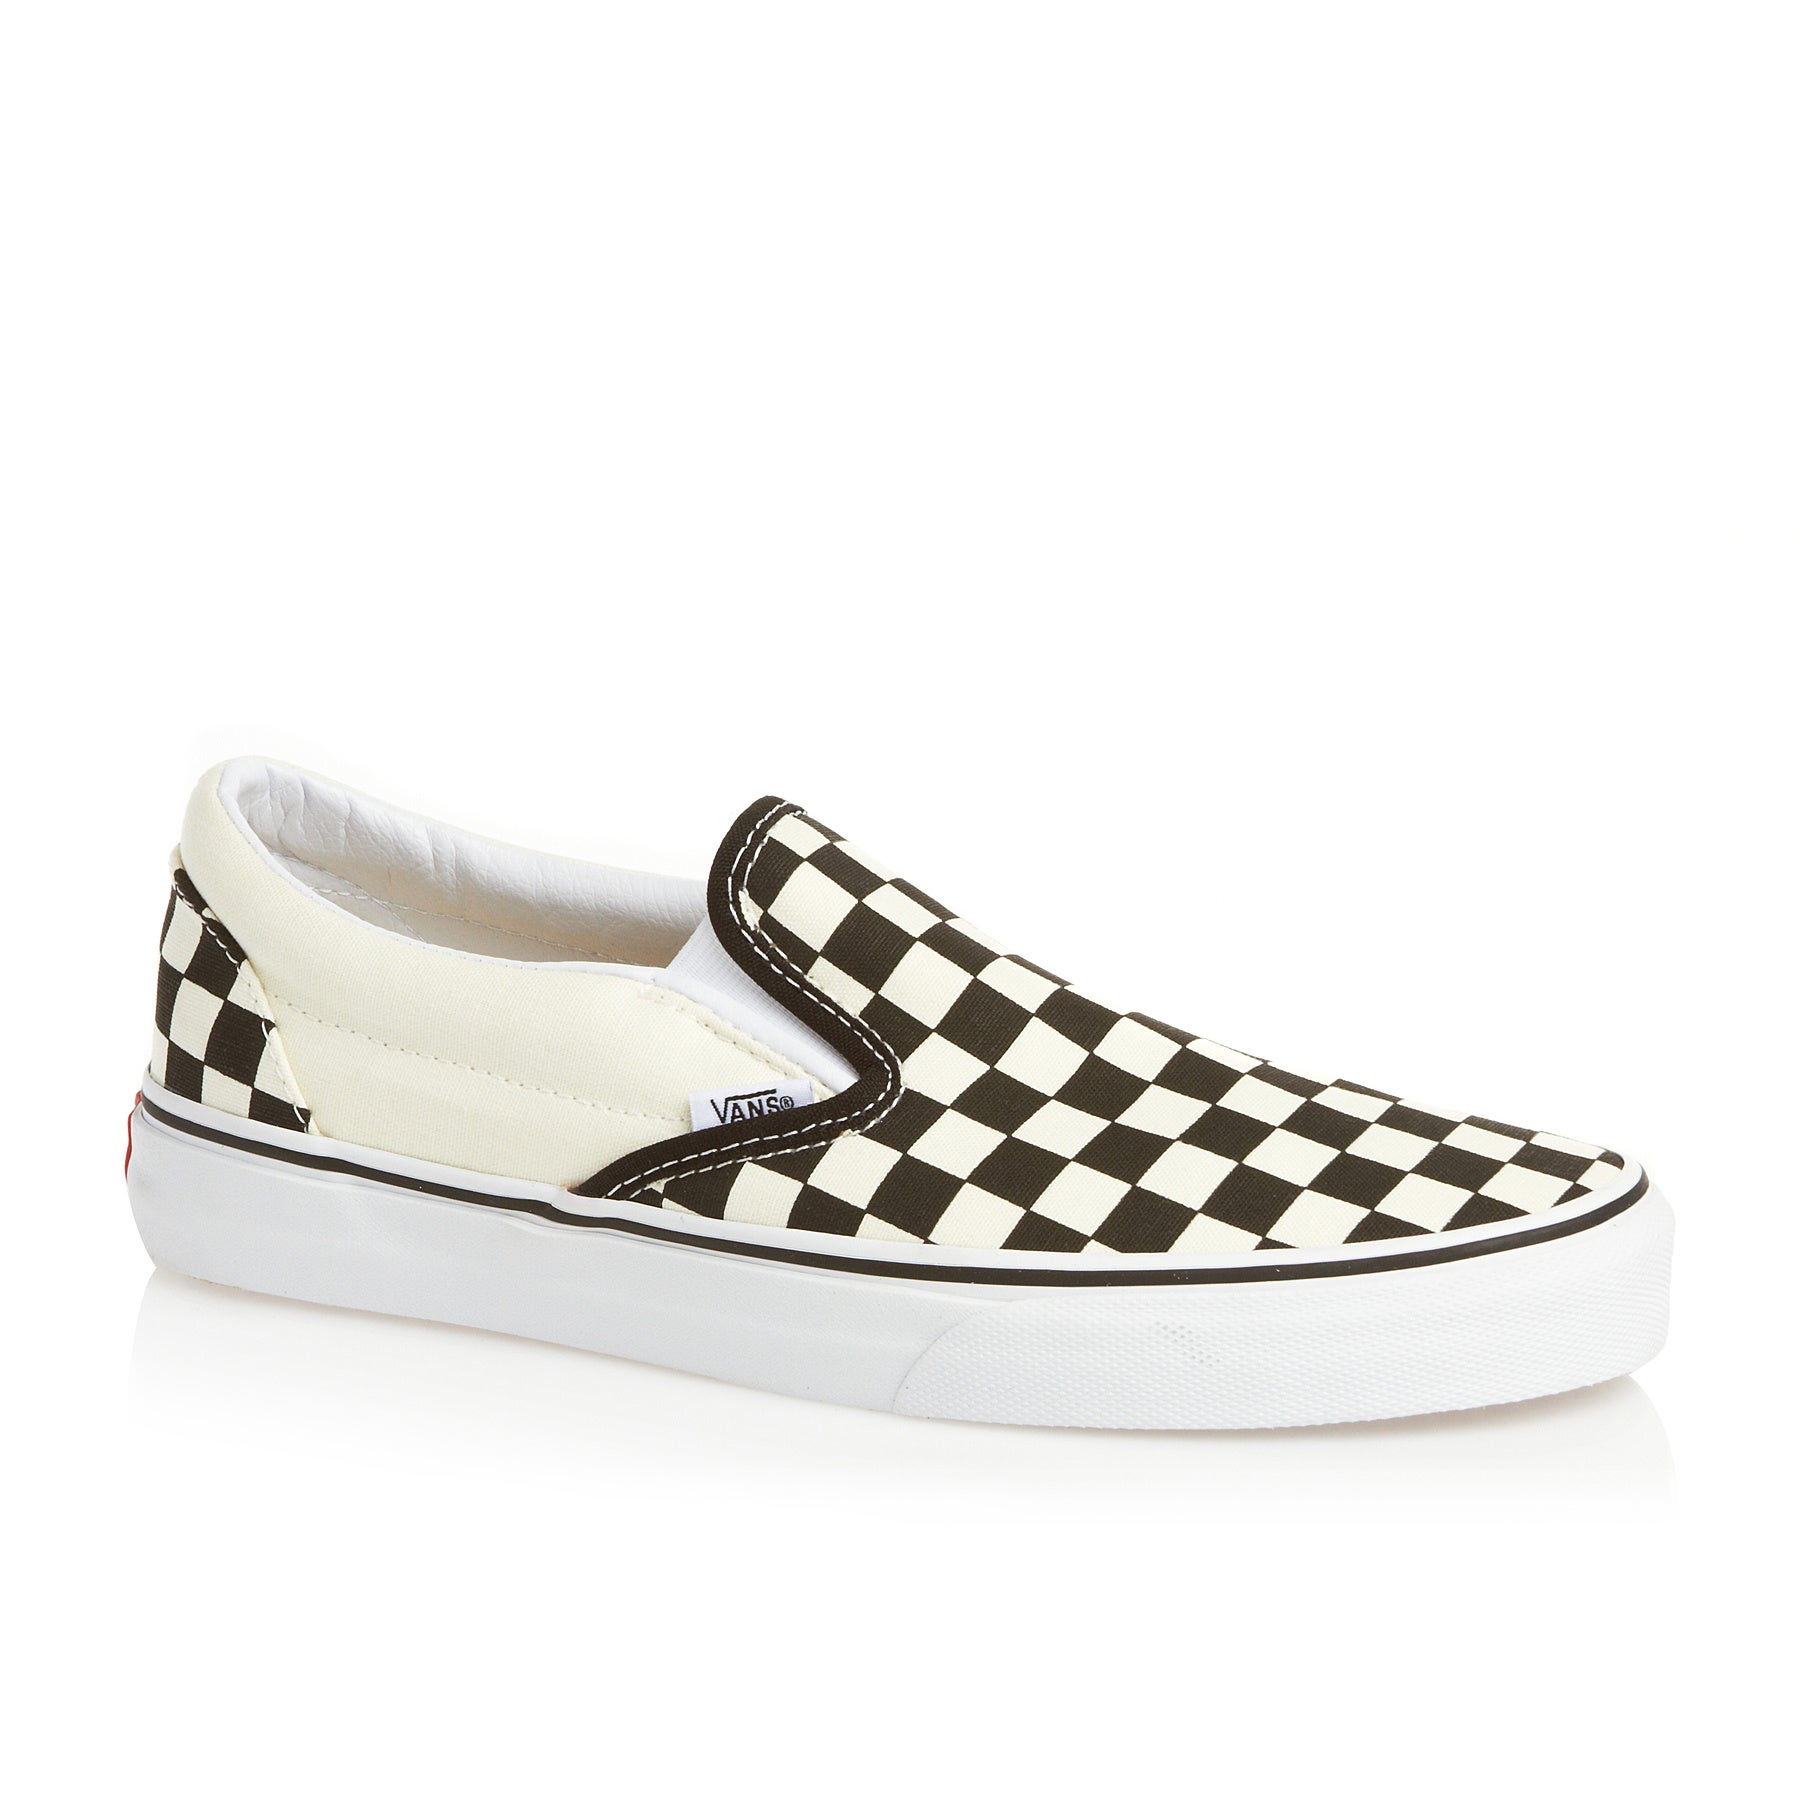 Vans Classic Slip On Shoes - White Black Checkerboard